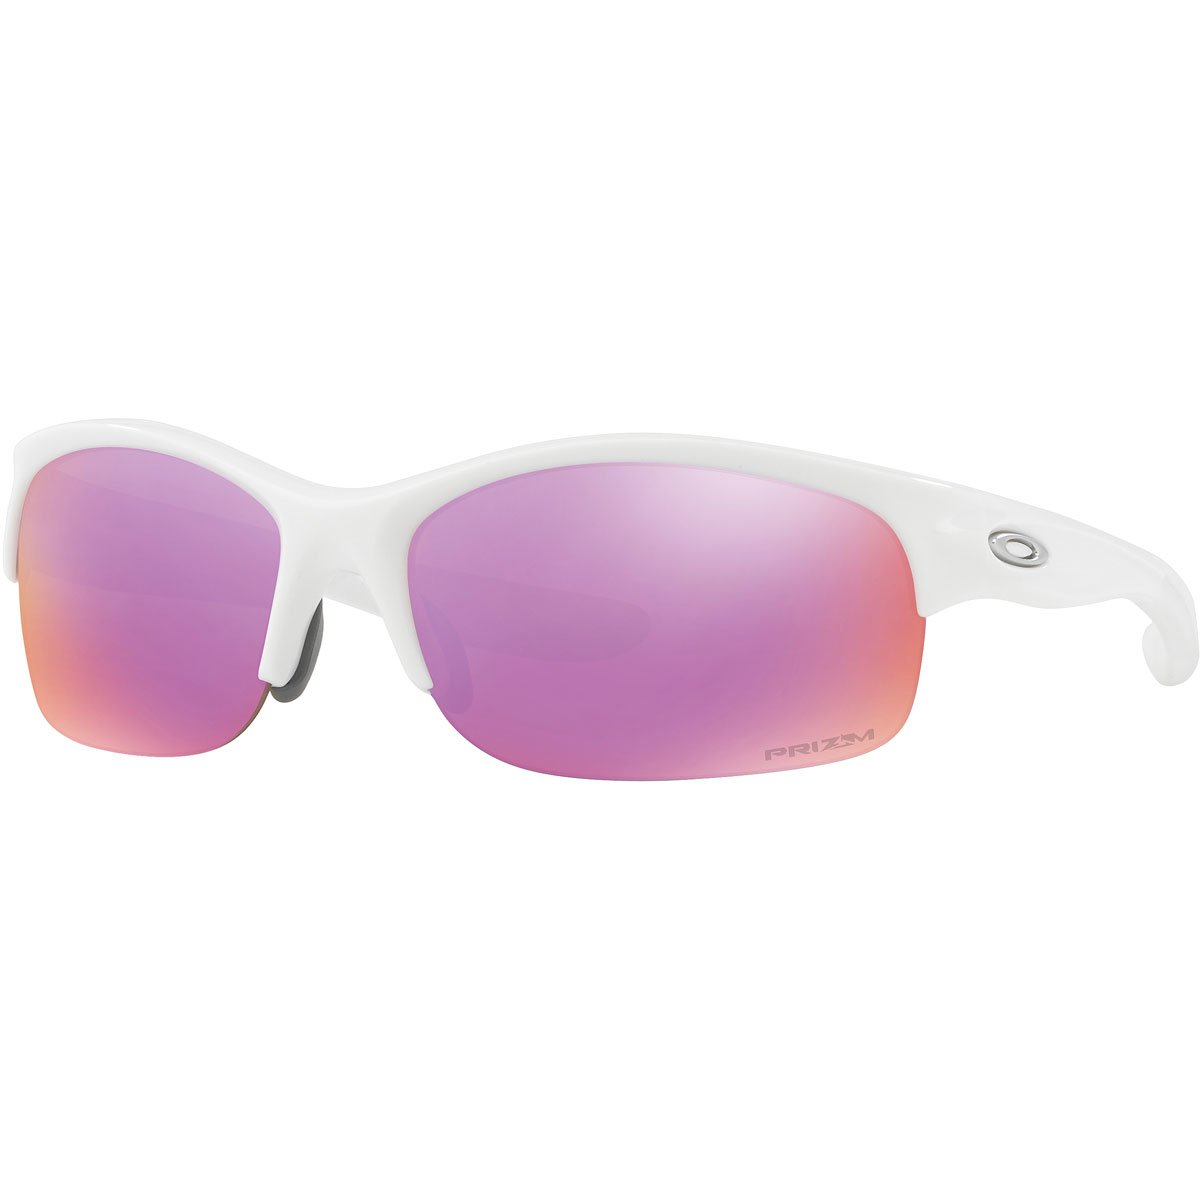 Oakley Women's OO9086 Commit Squared Pillow Sunglasses, Polished White/Prizm Golf, 62 mm by Oakley